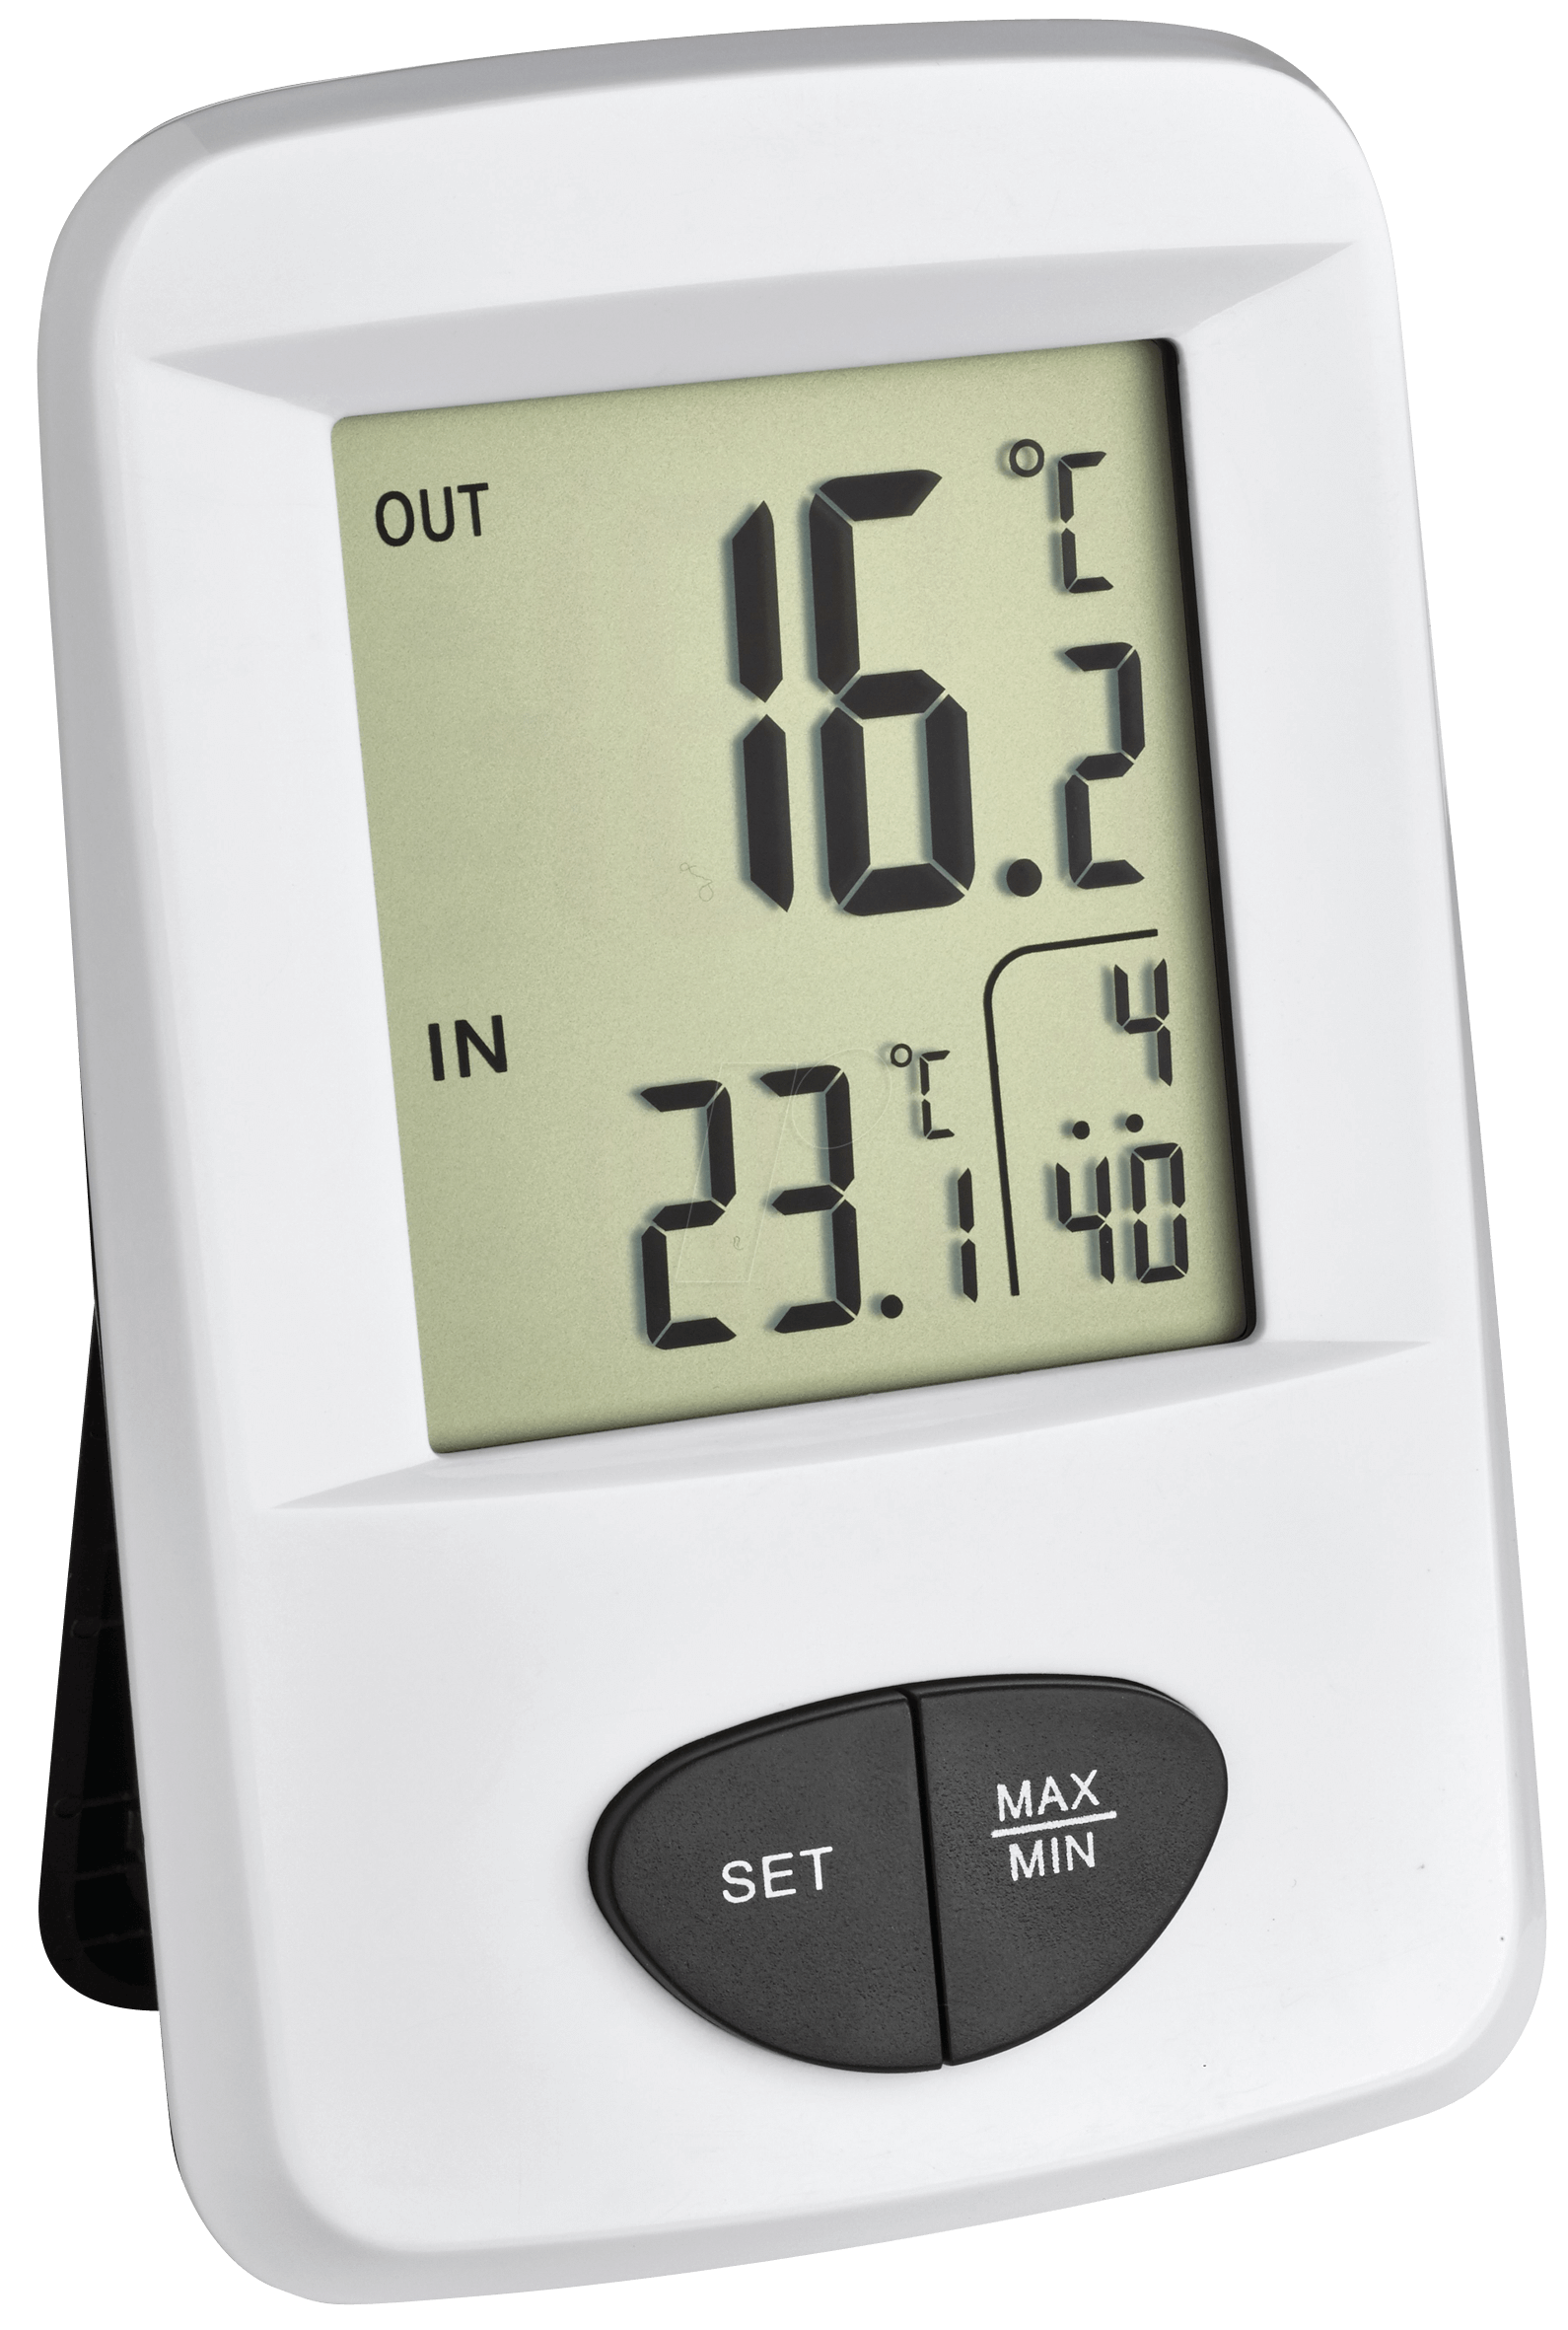 ws 30306102 funk thermometer base bei reichelt elektronik. Black Bedroom Furniture Sets. Home Design Ideas